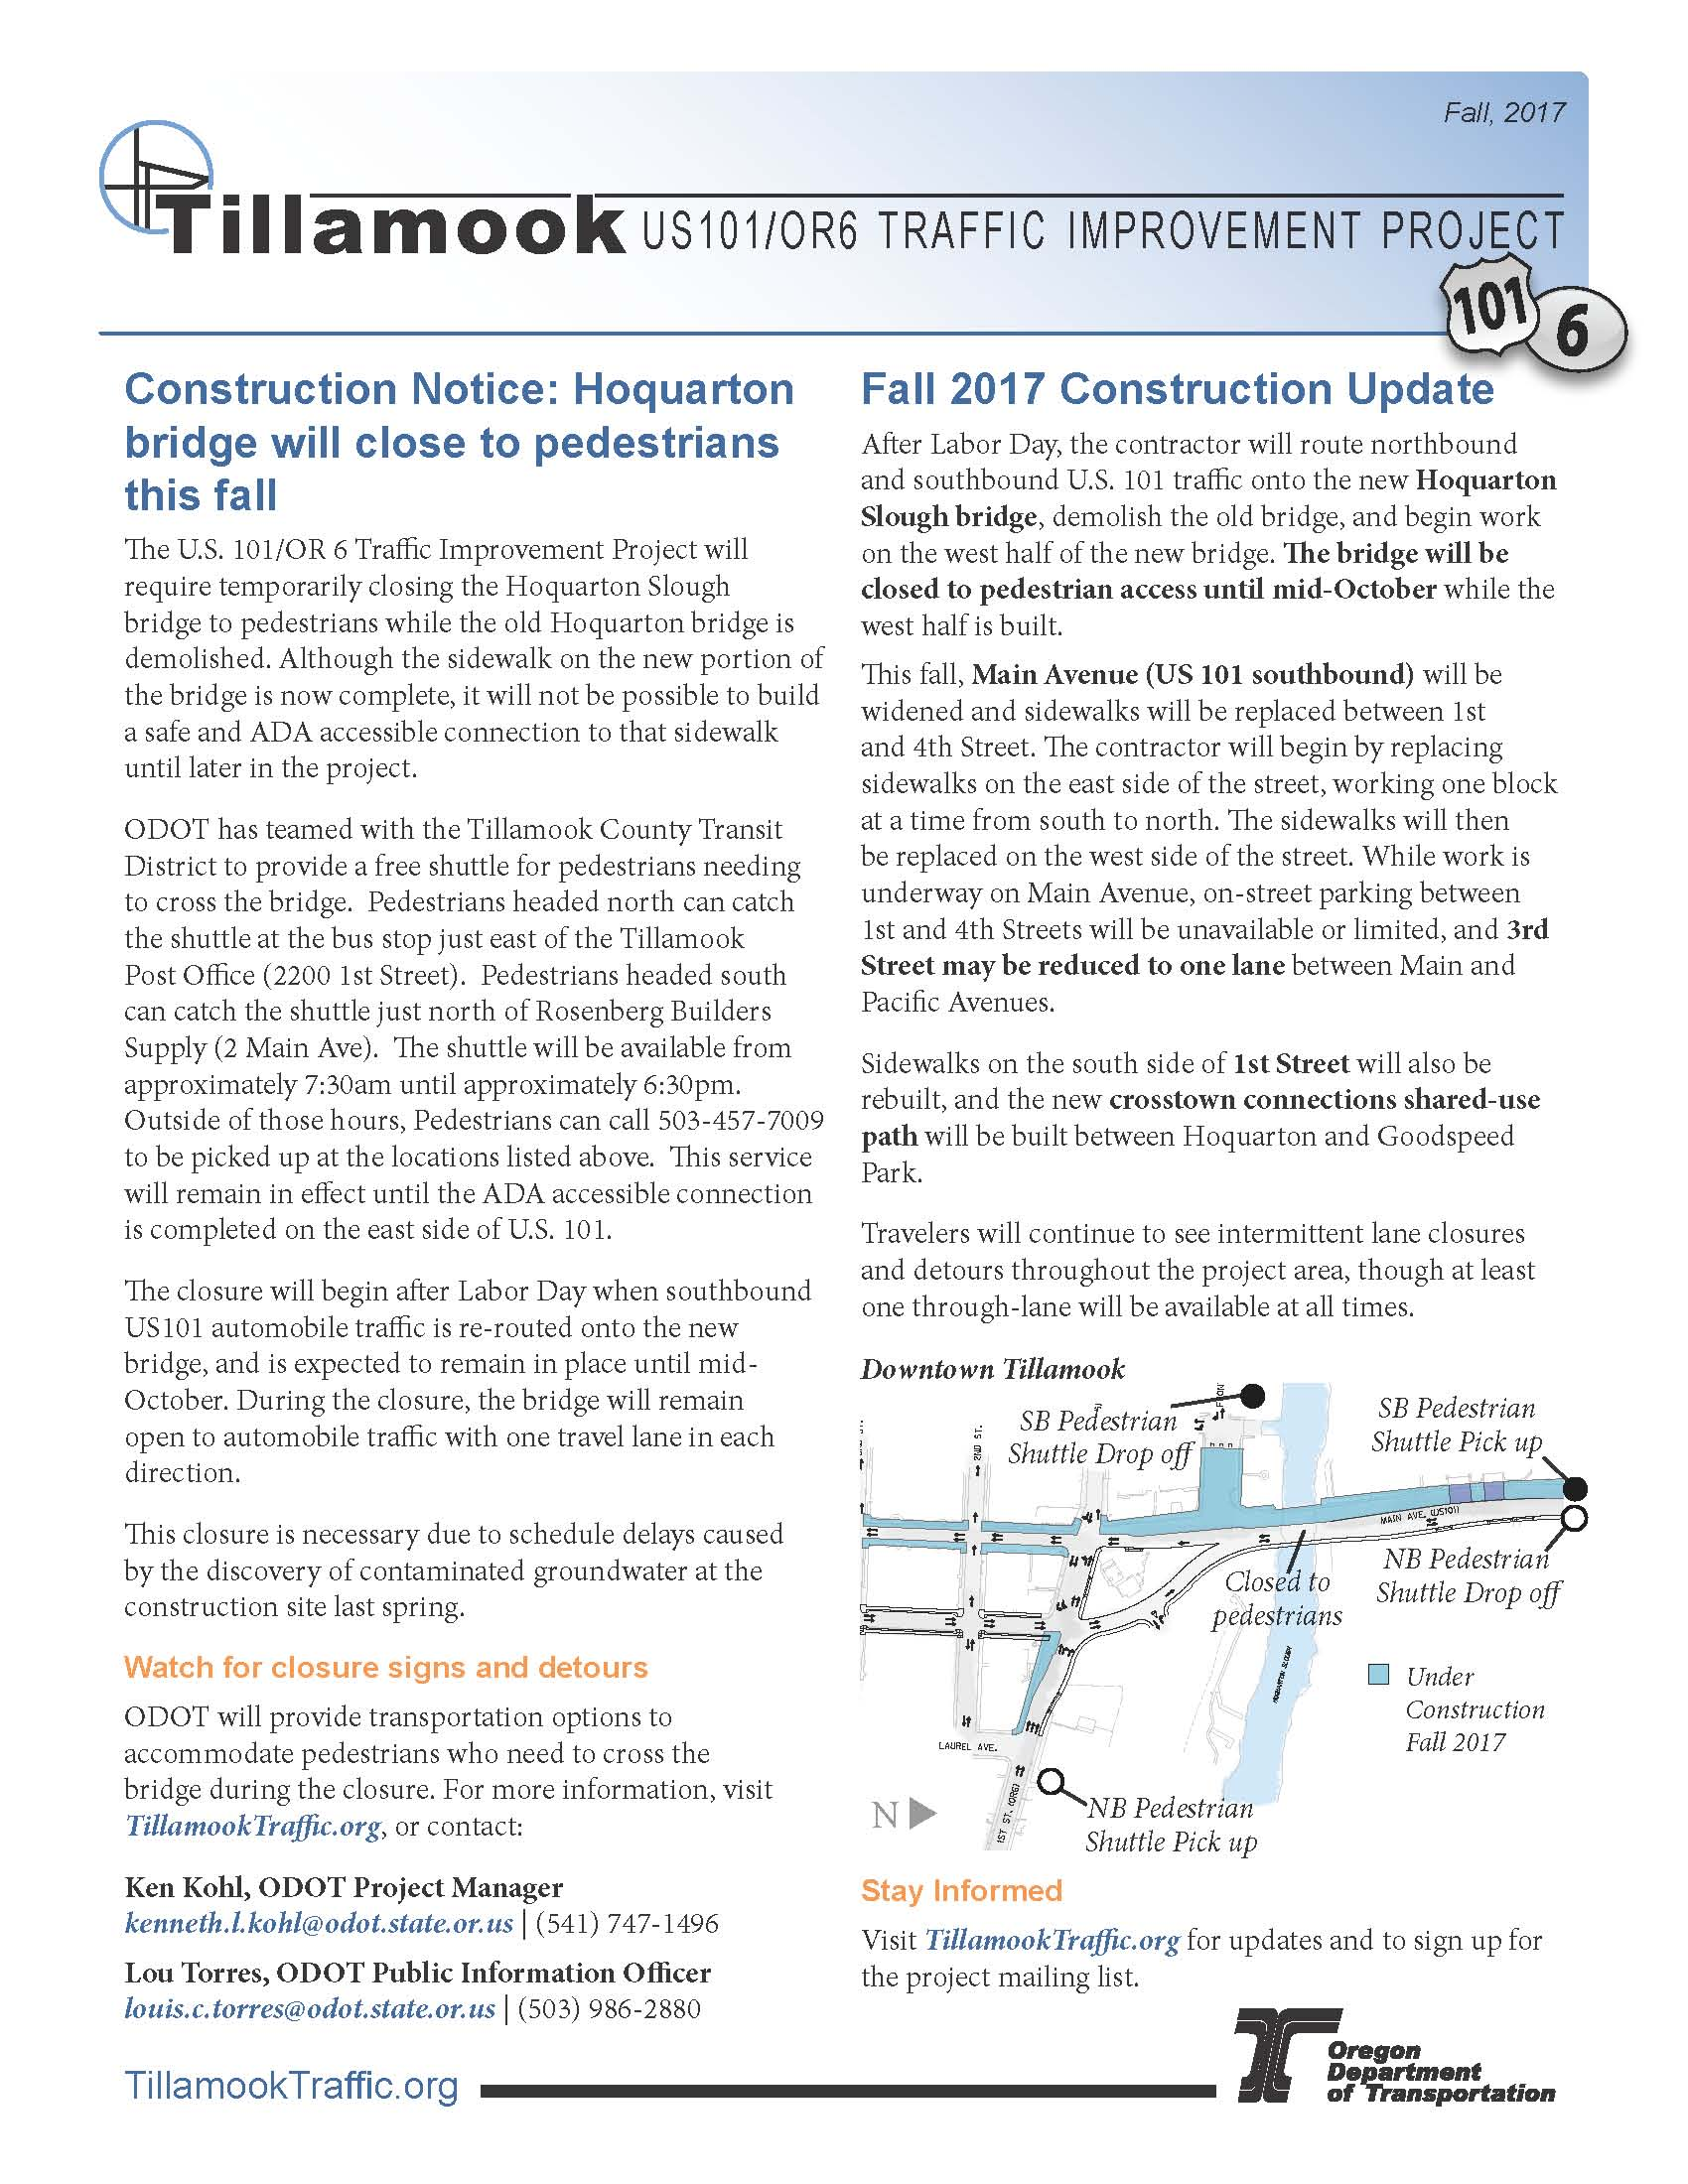 Tillamook OR6 US101 Update Flyer Fall 2017 DRAFT_Page_1